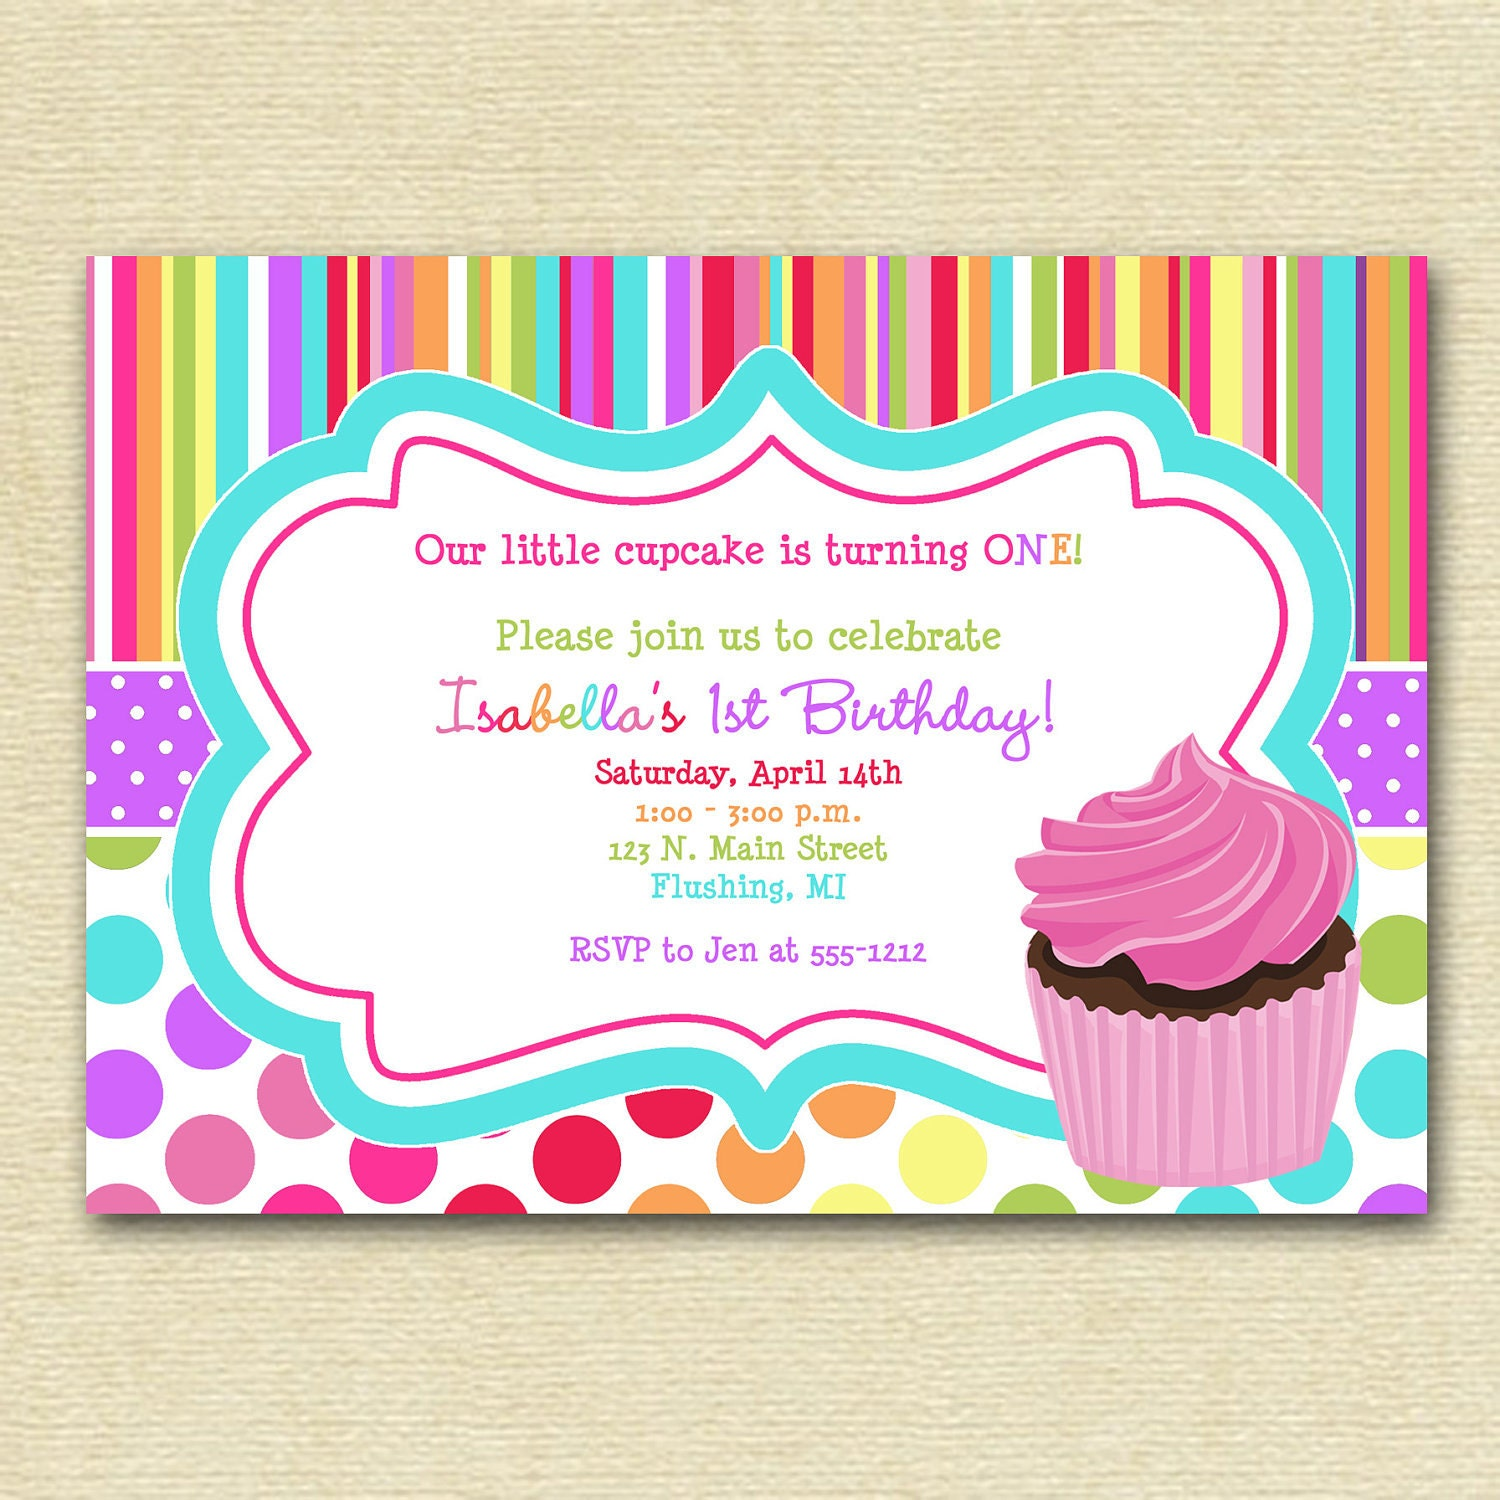 Cupcake birthday party invitation cupcake invitation zoom filmwisefo Gallery